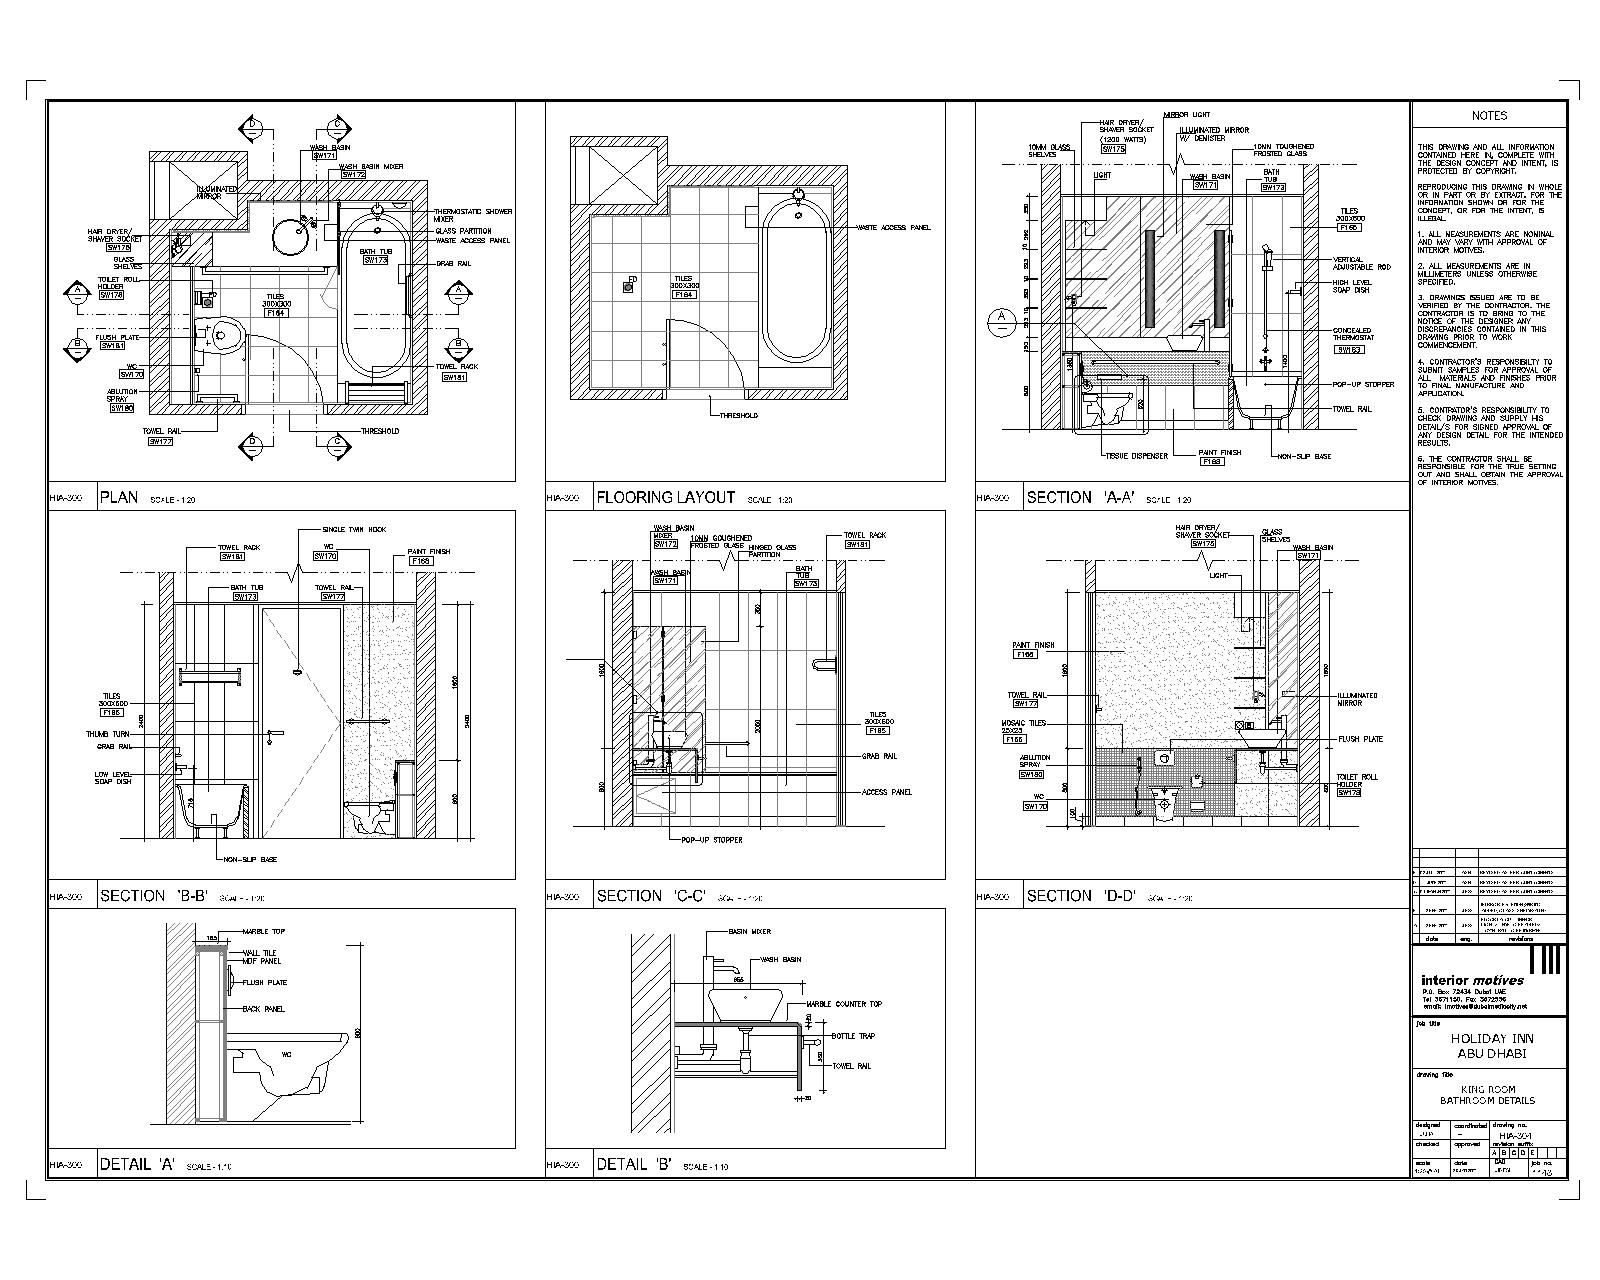 Autocad drawings detail by ashik ahammed at coroflot for 2d architectural drawing software free